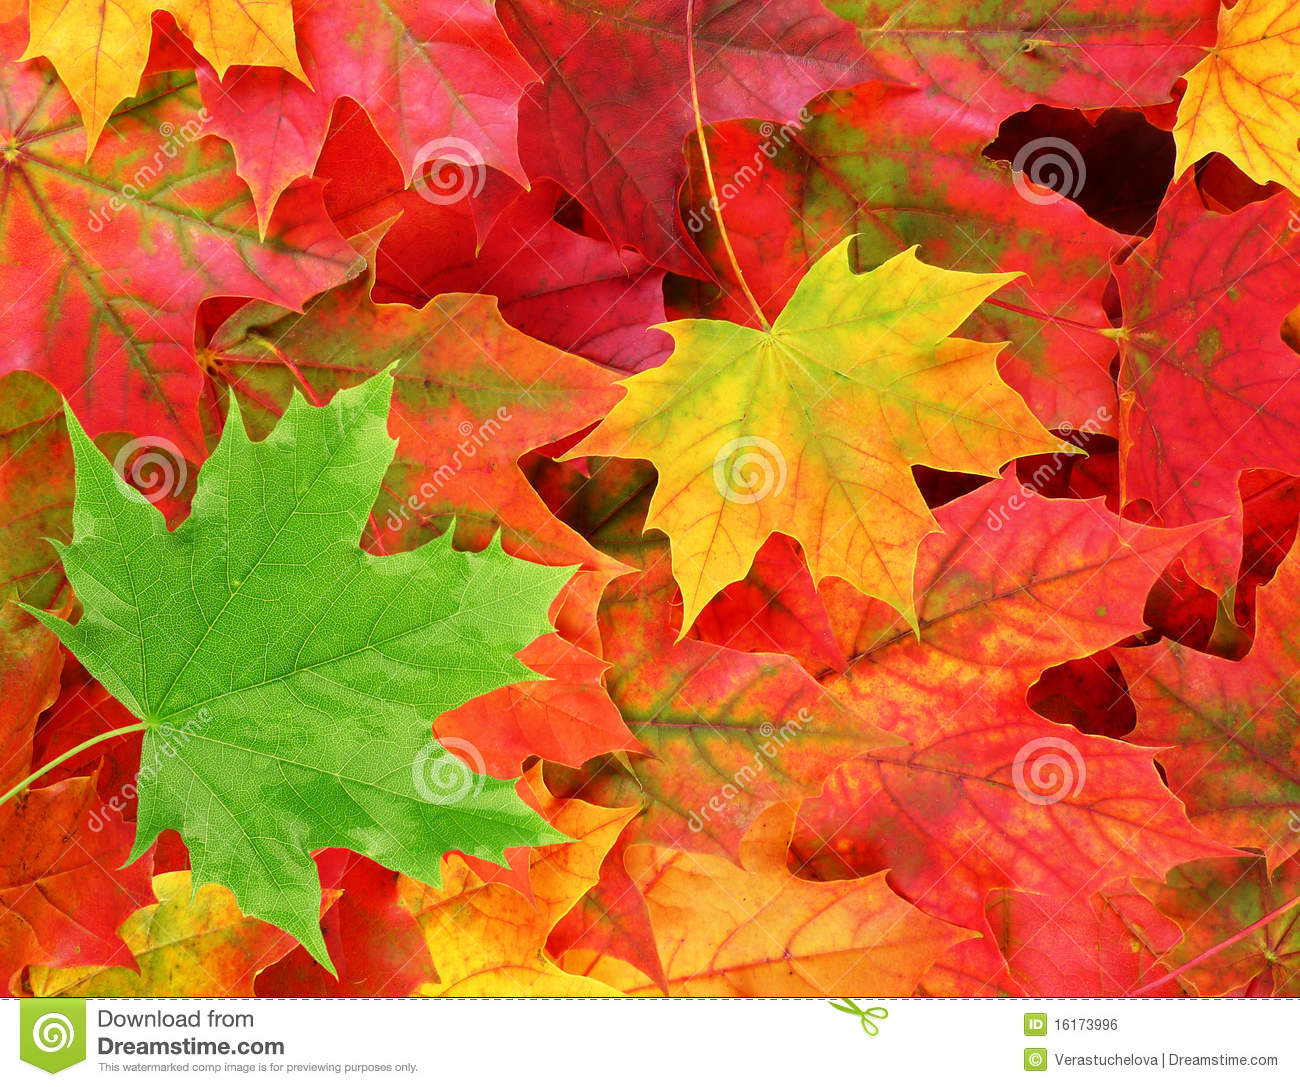 Fall Leaves Wallpaper Powerpoint Background Colored Maple Leaves With One Green Leaf Stock Photo